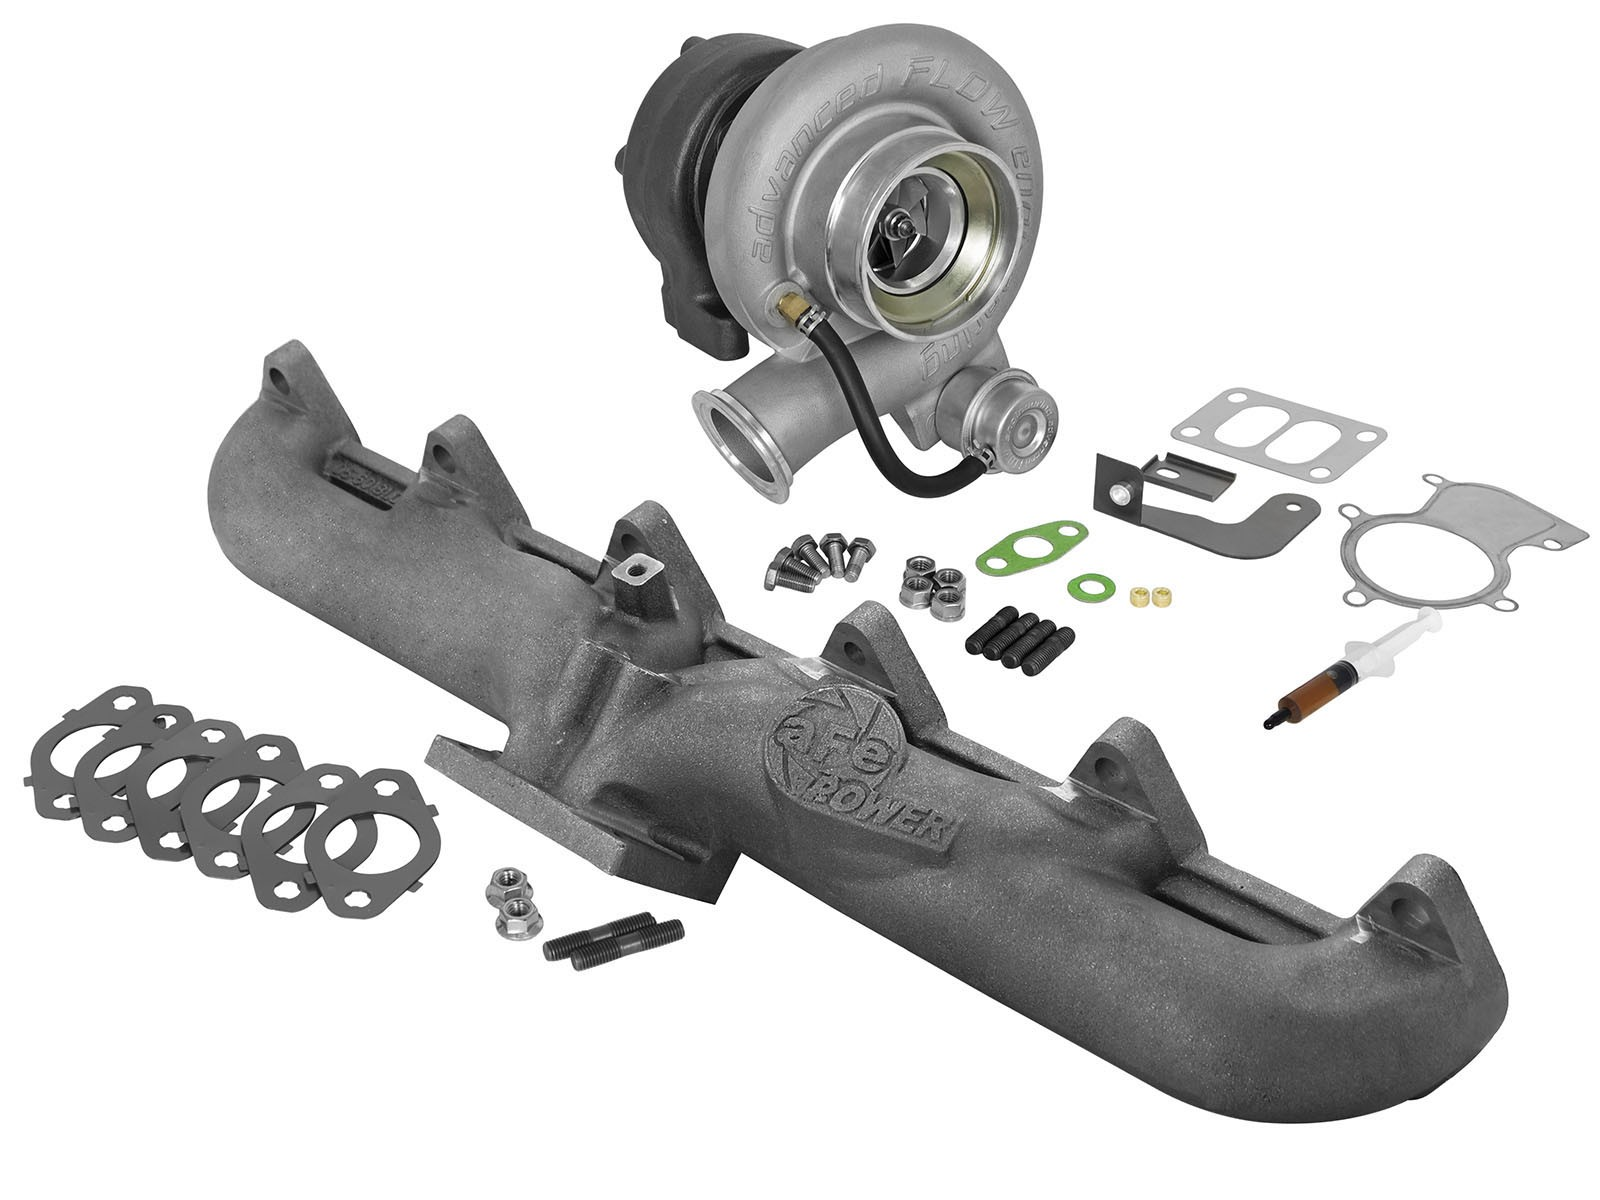 aFe POWER 46-60060-MB BladeRunner Street Series Turbocharger w/ Exhaust Manifold